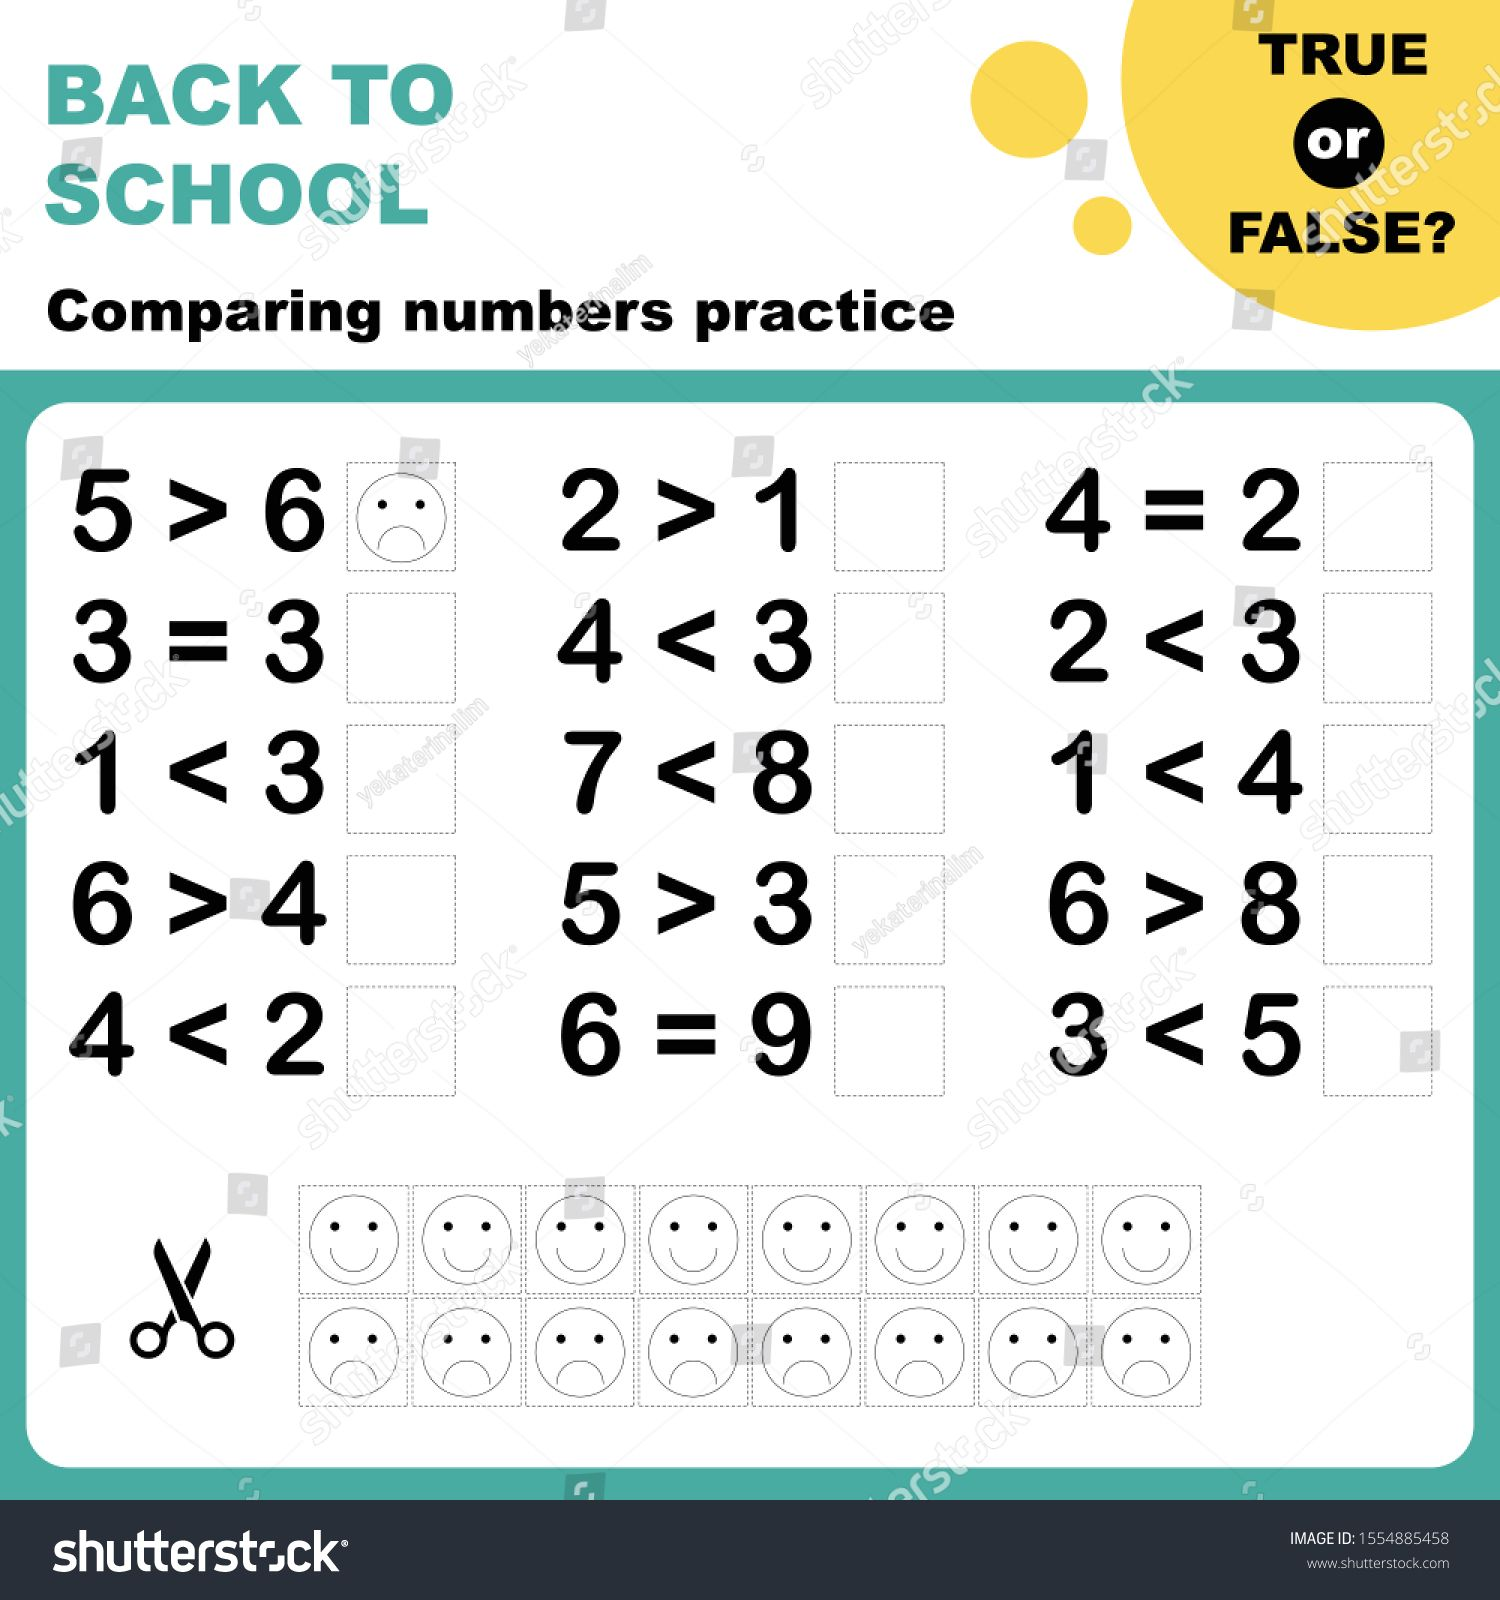 True Or False Comparing Numbers Worksheet Easy Worksheet